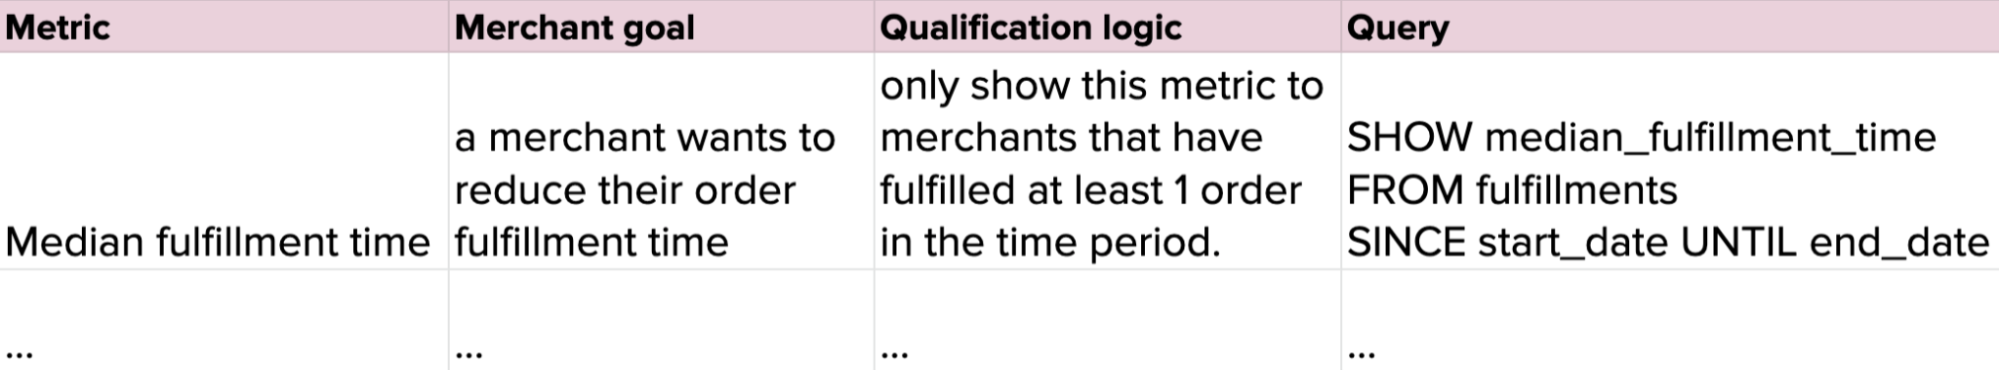 A table representing a Data specification template.  The columns are Metric, Merchant goal, Qualification logic, and query.  The table has one row of sample data